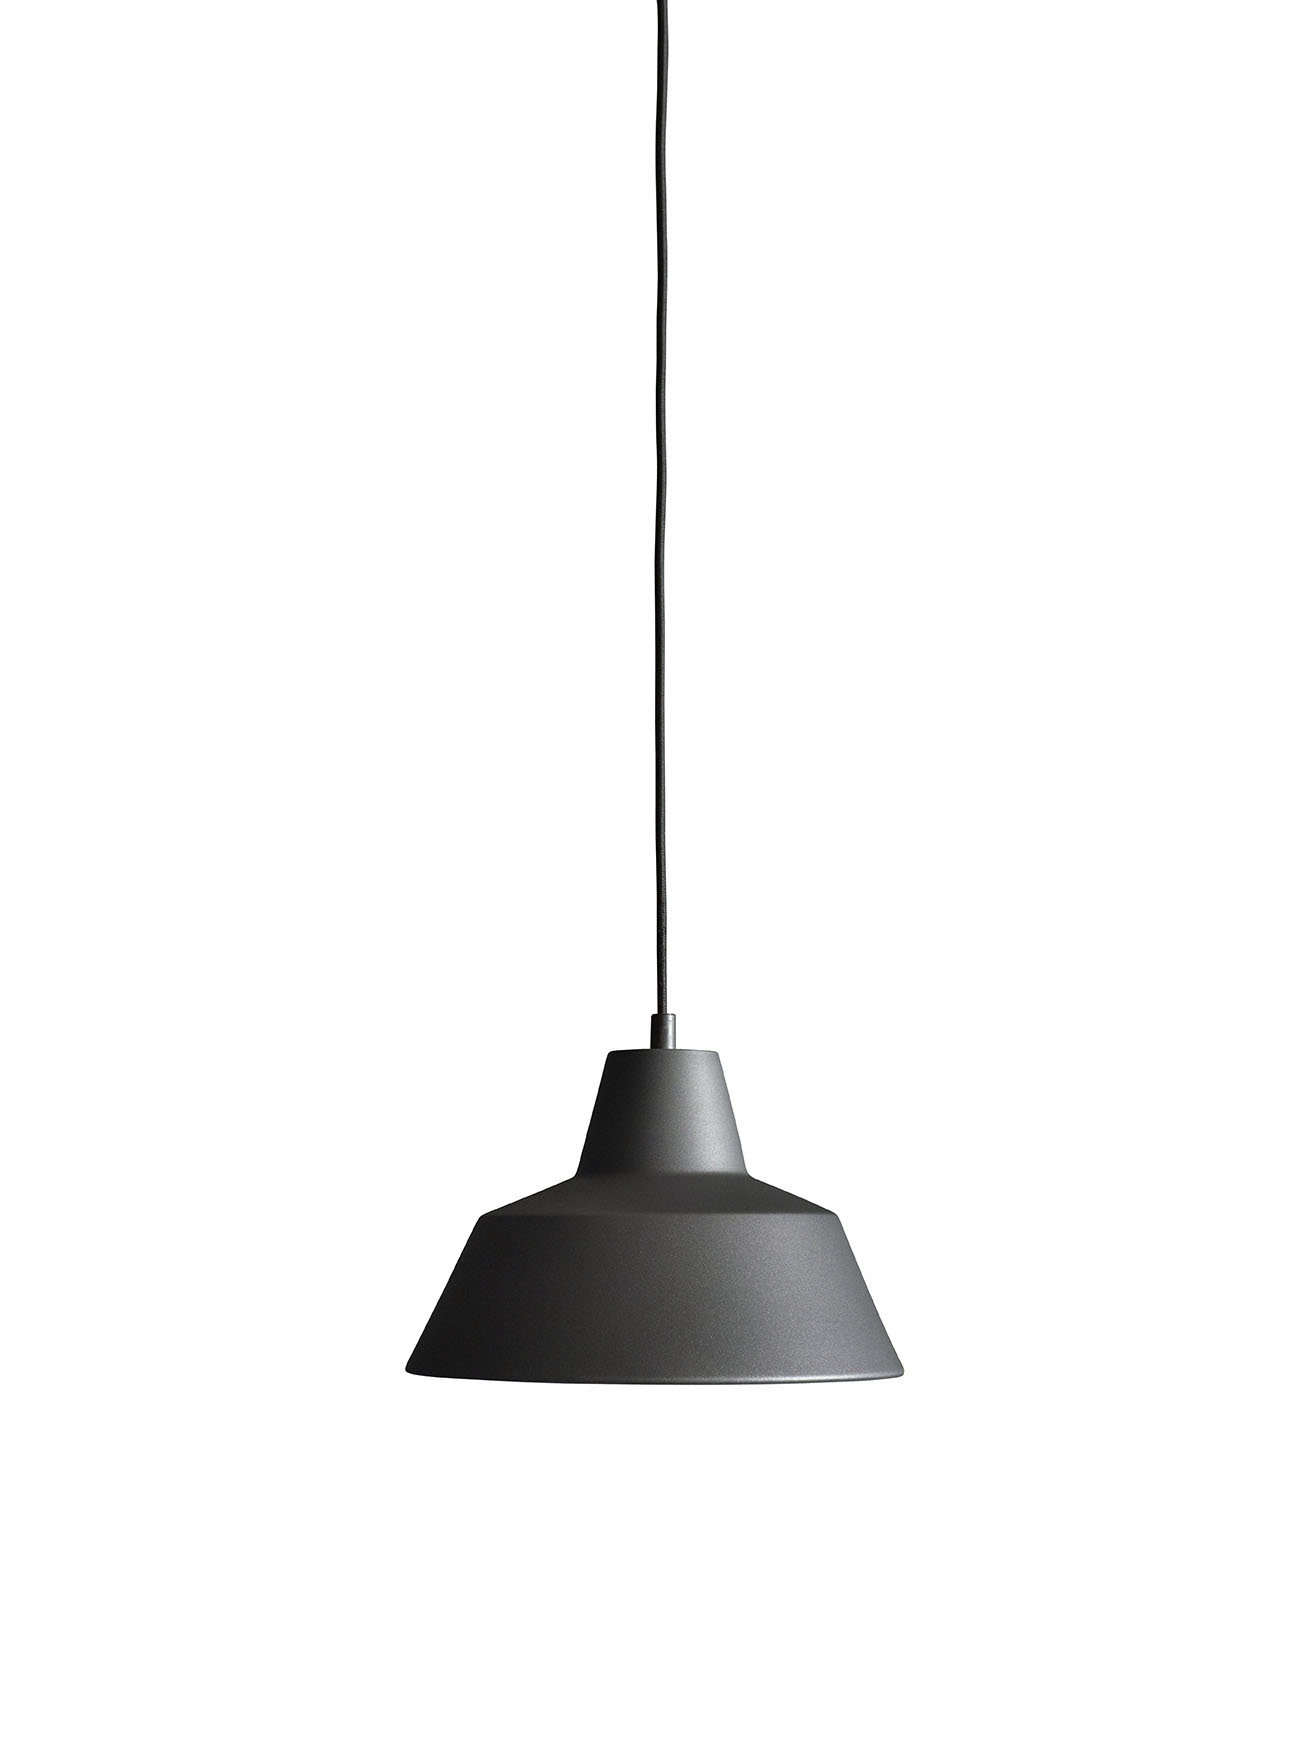 Made by Hand Workshop Lamp W2 anthrazit schwarz